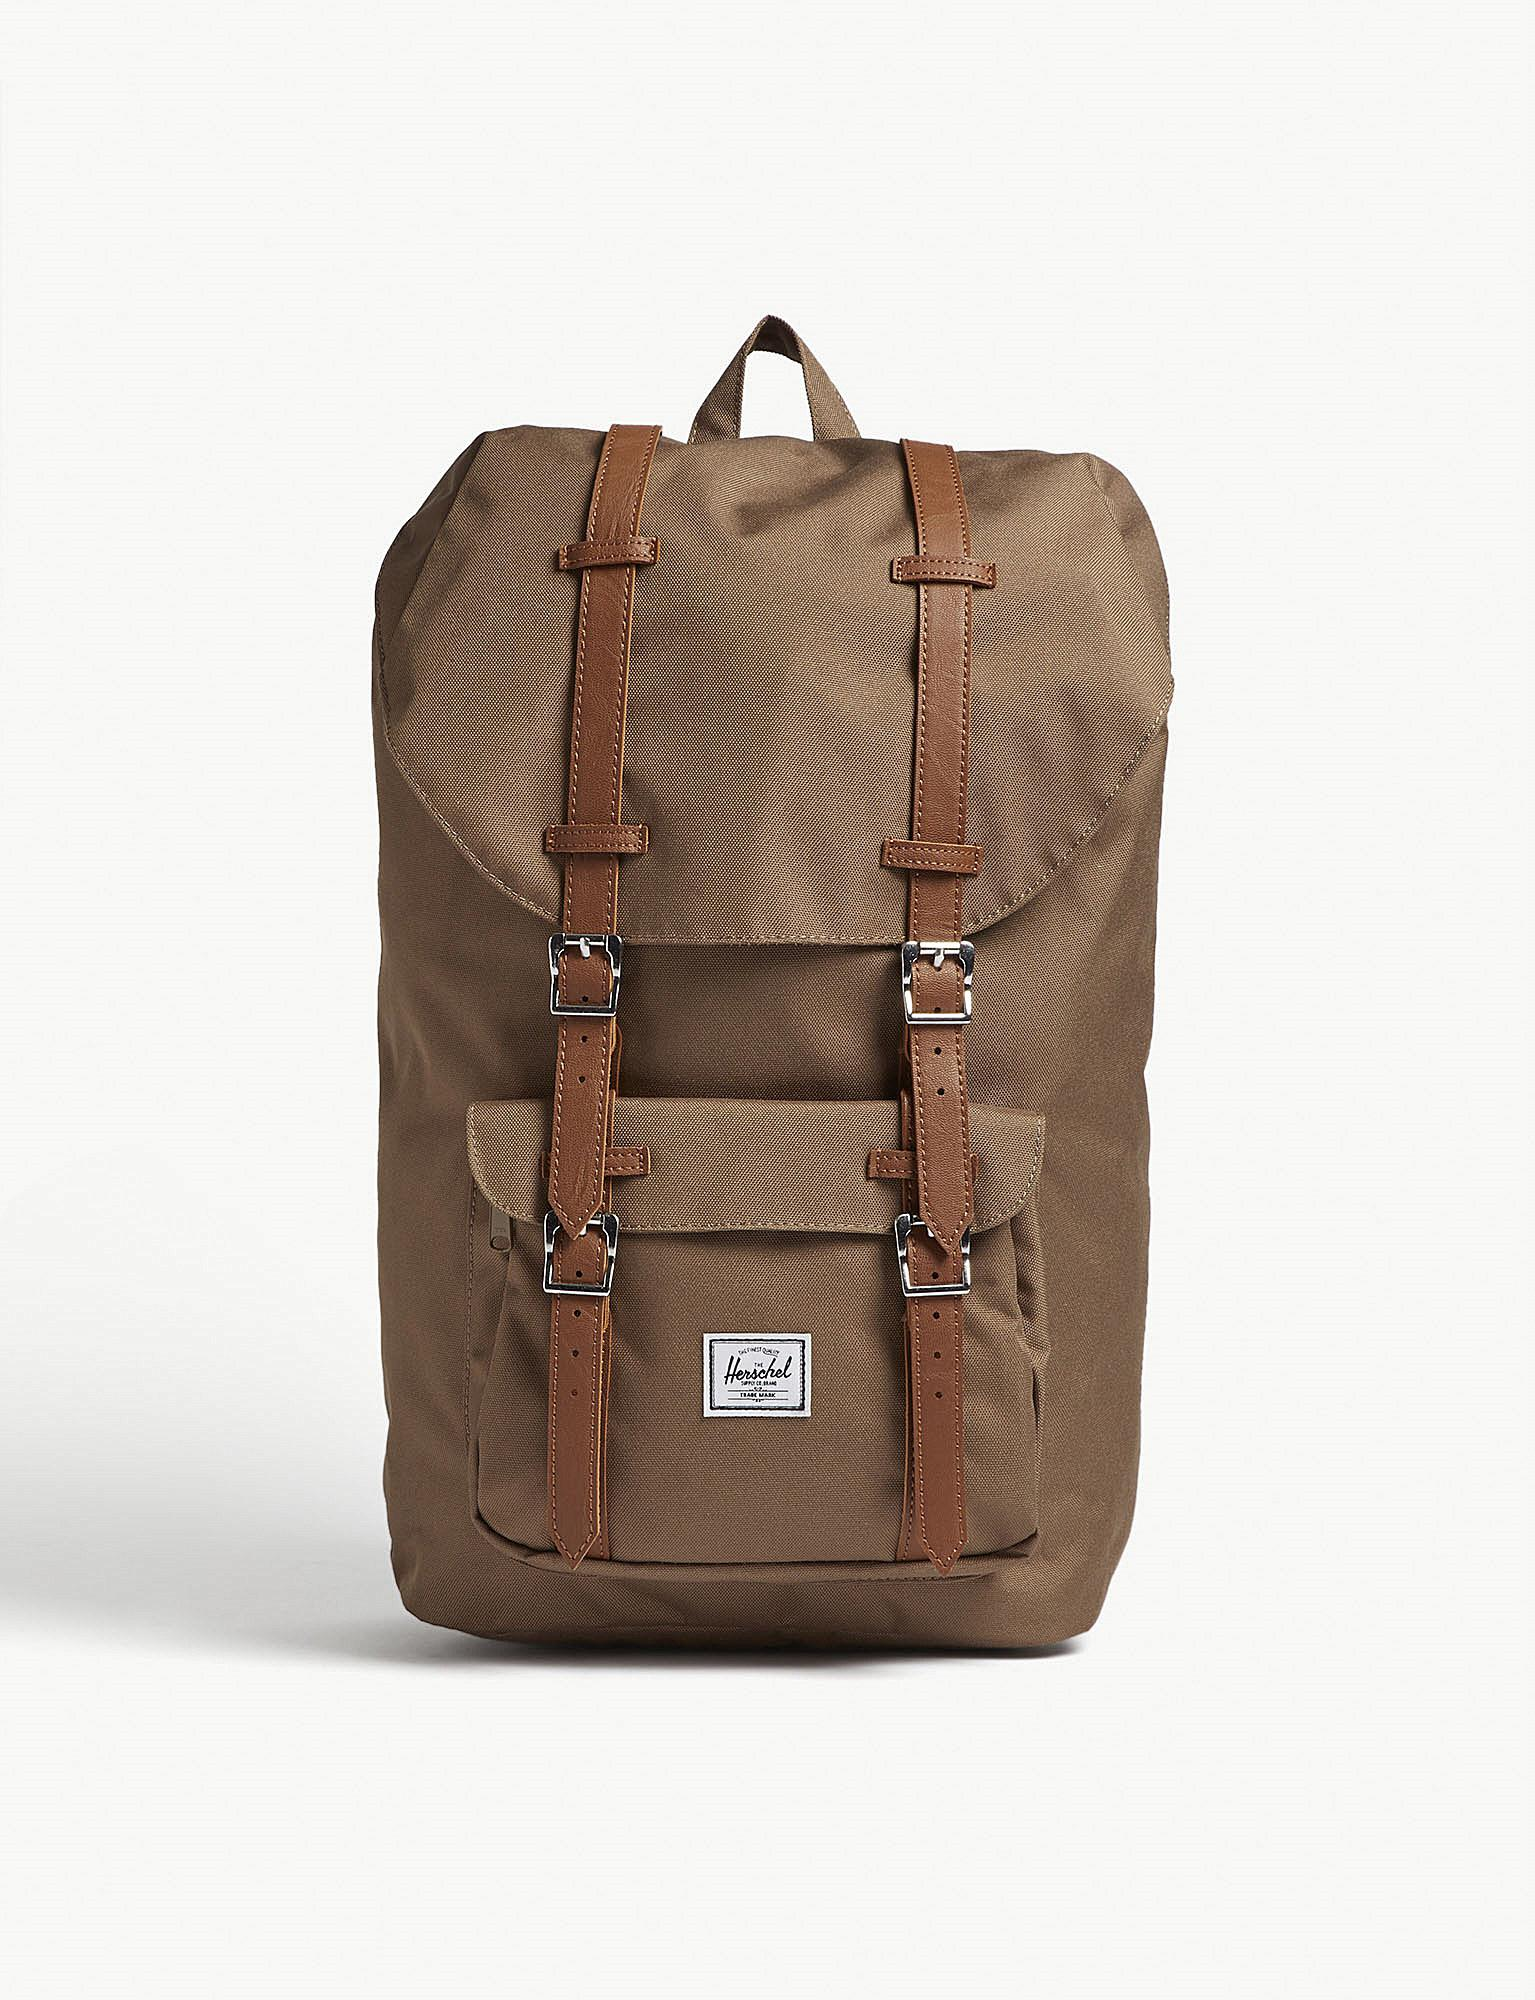 90faf611f10 ... wholesale dealer 3bed9 88473 Little Brown Leather Backpack - Fairway  Golf and Print ...